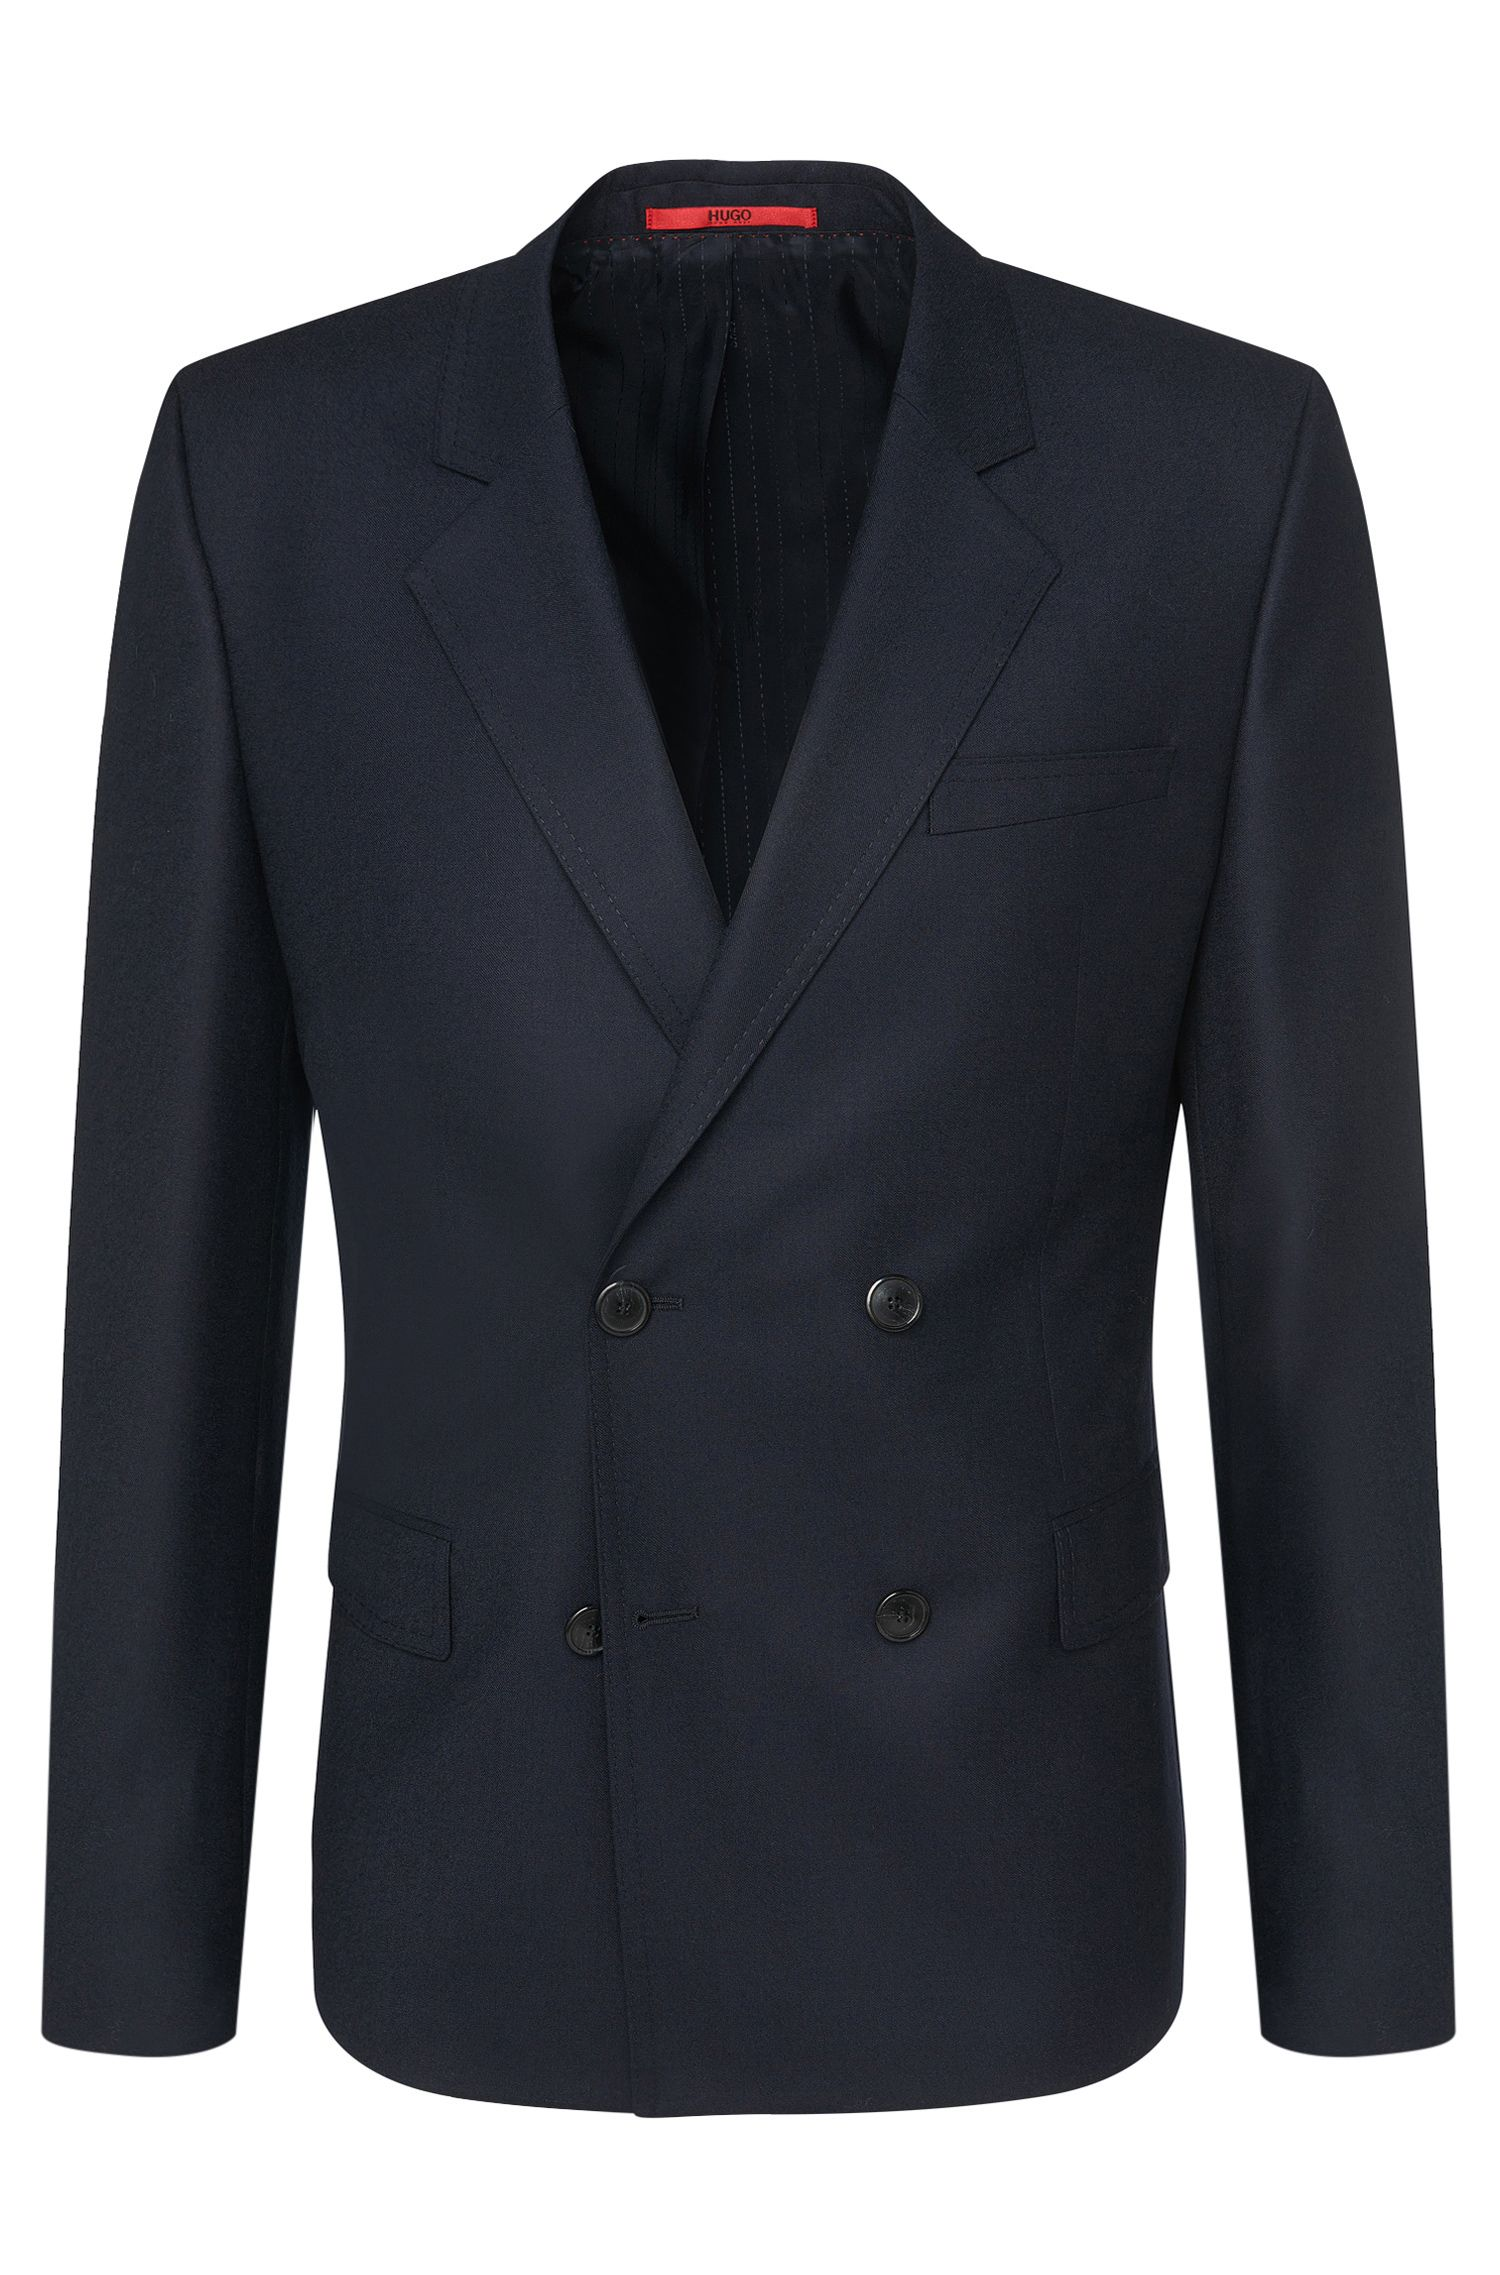 'Andru' | Slim Fit, Virgin Wool Double Breasted Sport Coat